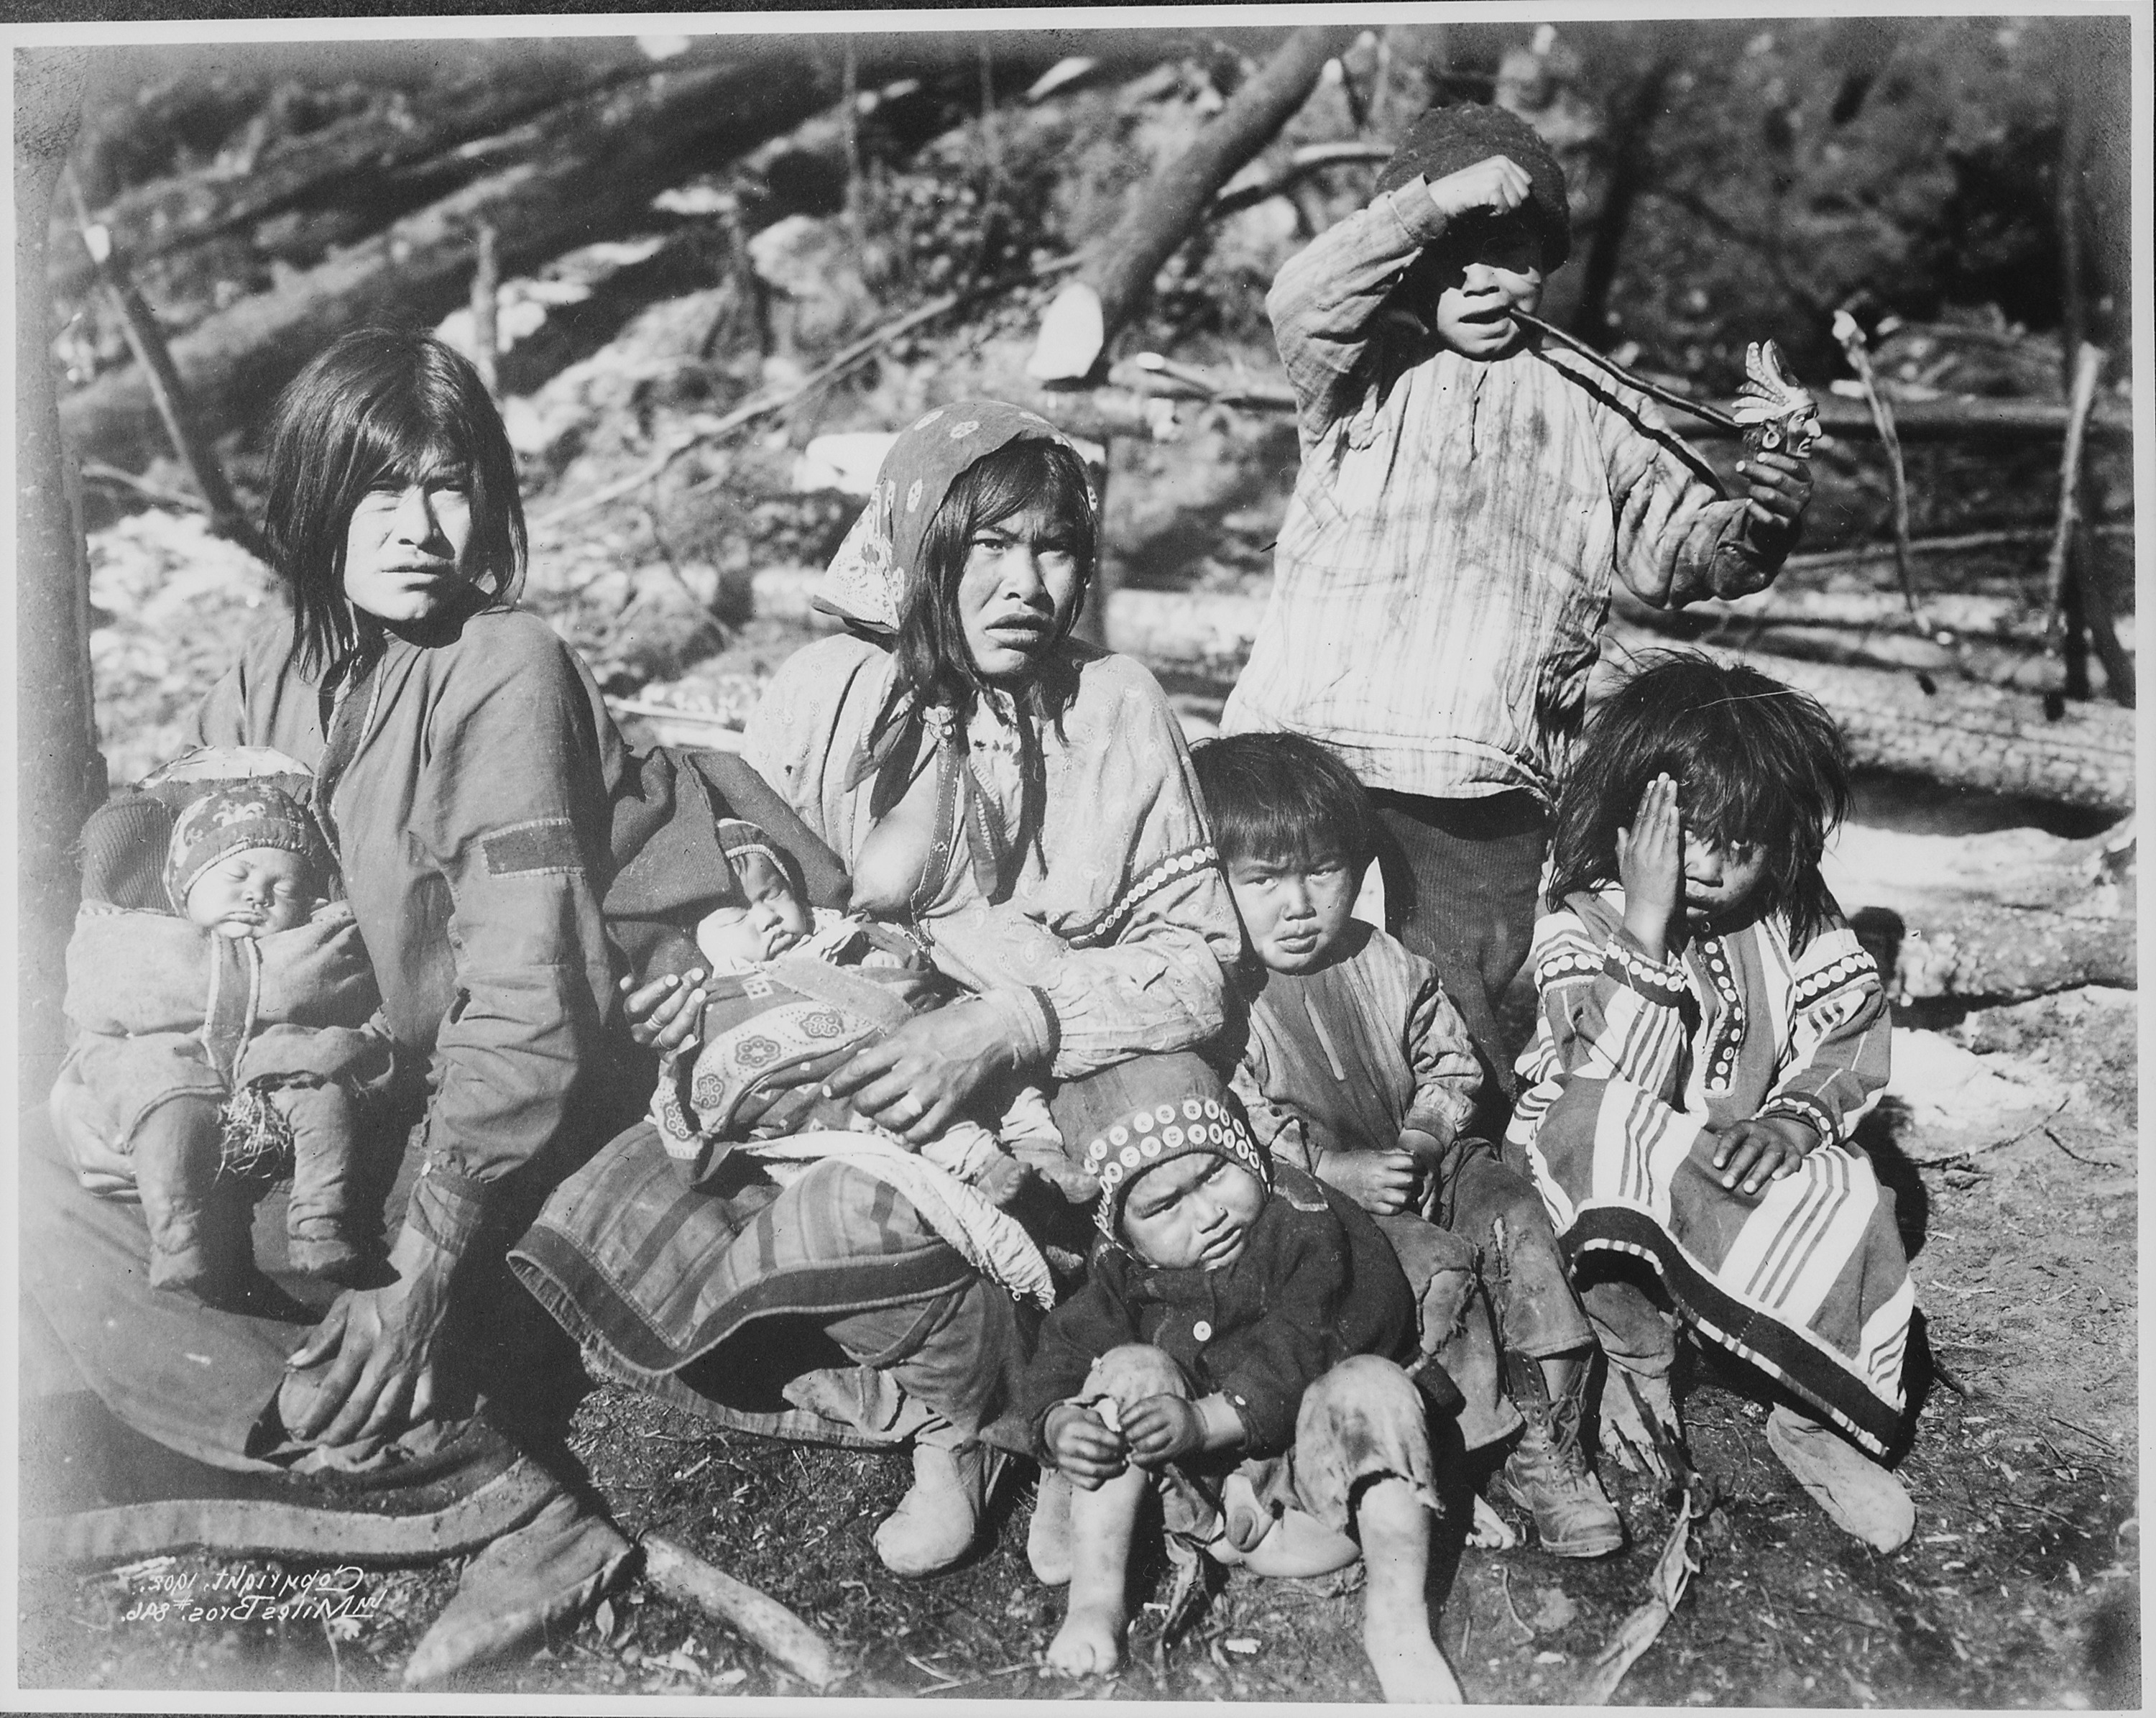 external image Two_Tlingit_women_with_several_children_near_the_Kotsina_River%2C_Alaska%2C_1902_-_NARA_-_524407.jpg